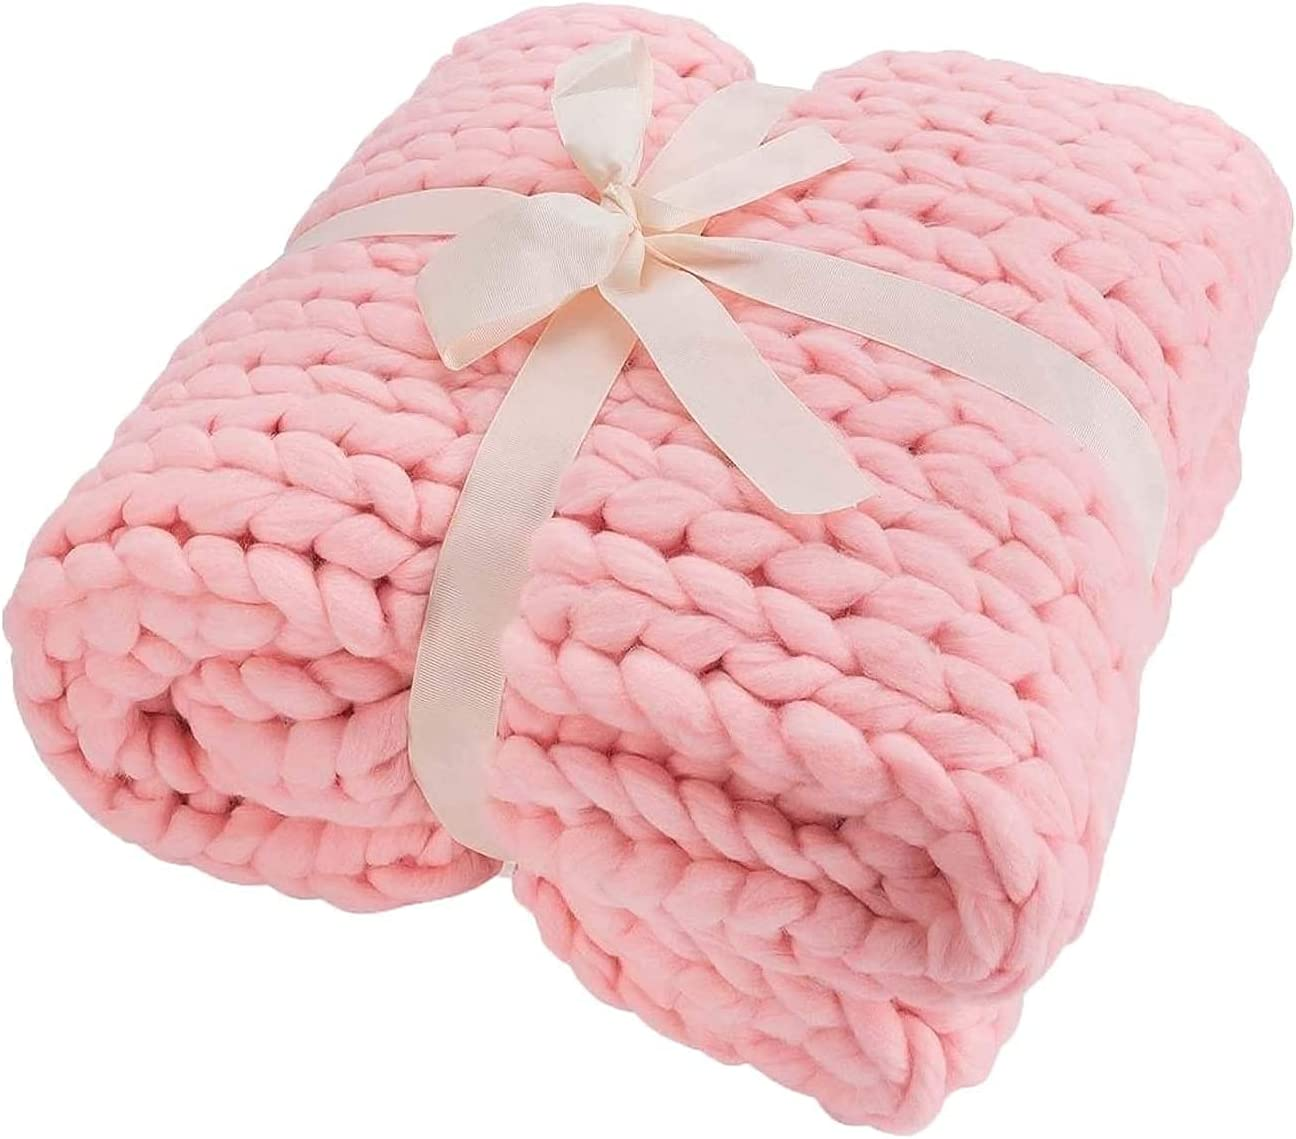 TDMYCS Ultra Soft Throw Attention brand Knit Accent Blanket Opening large release sale Chunky